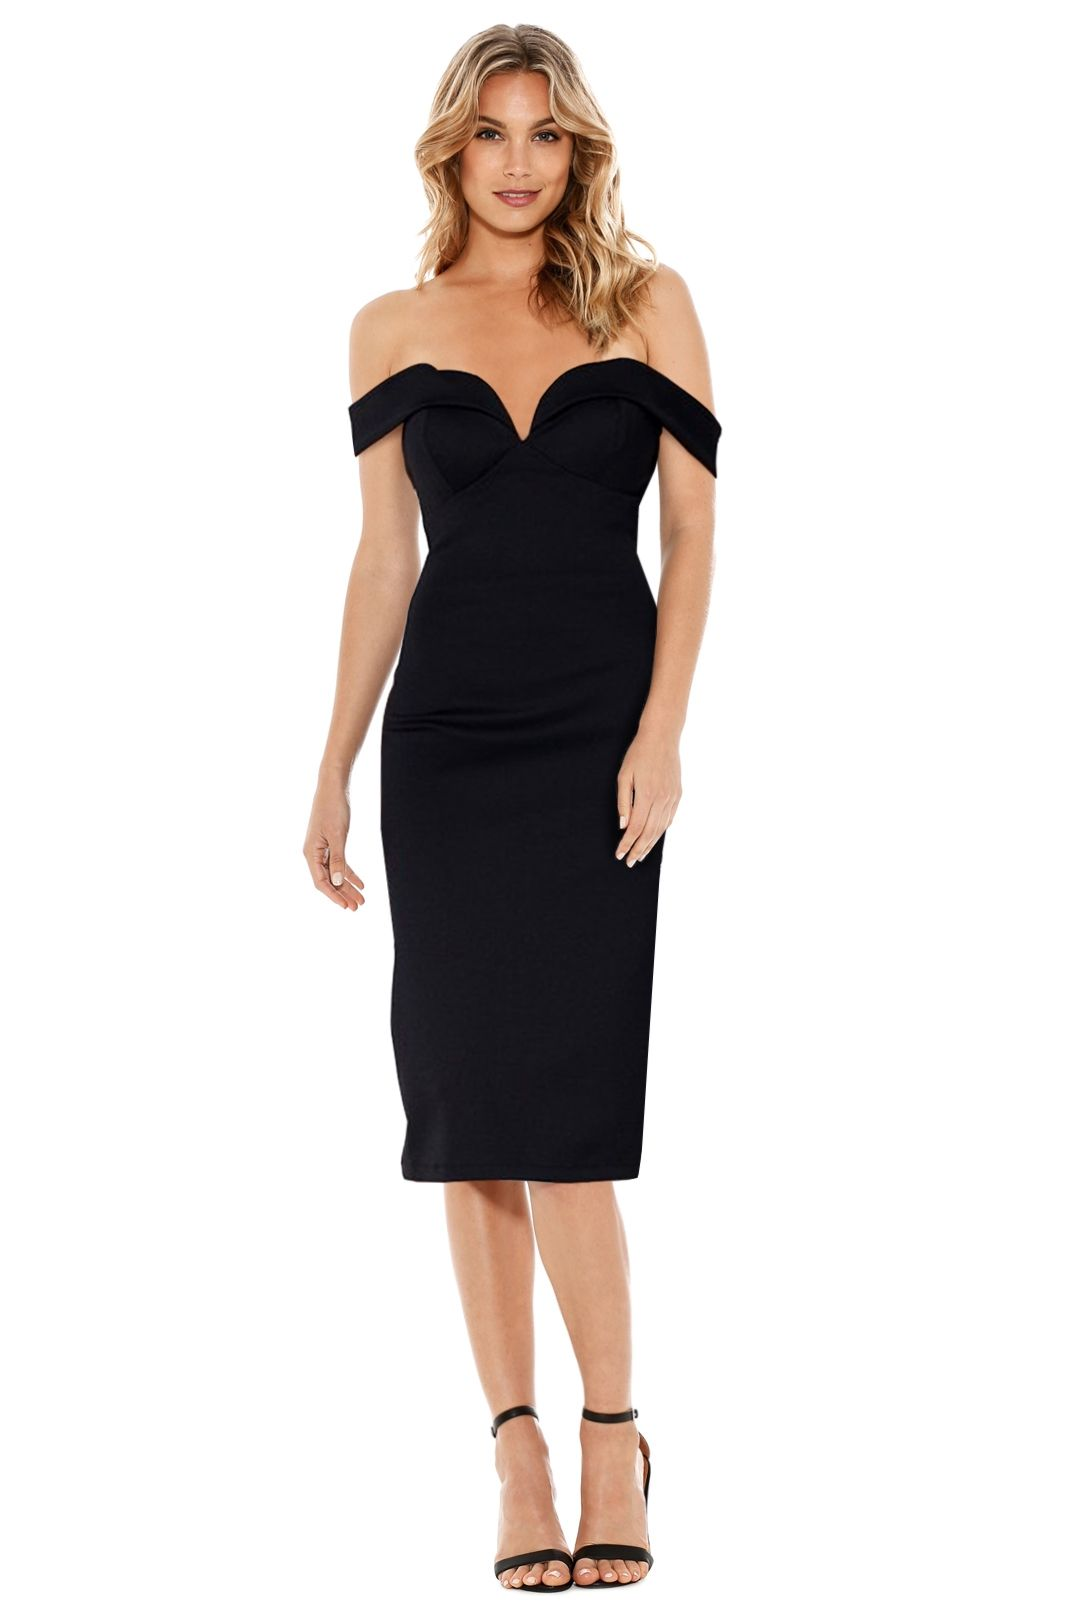 Mossman - The Love Letter Dress - Black - Front